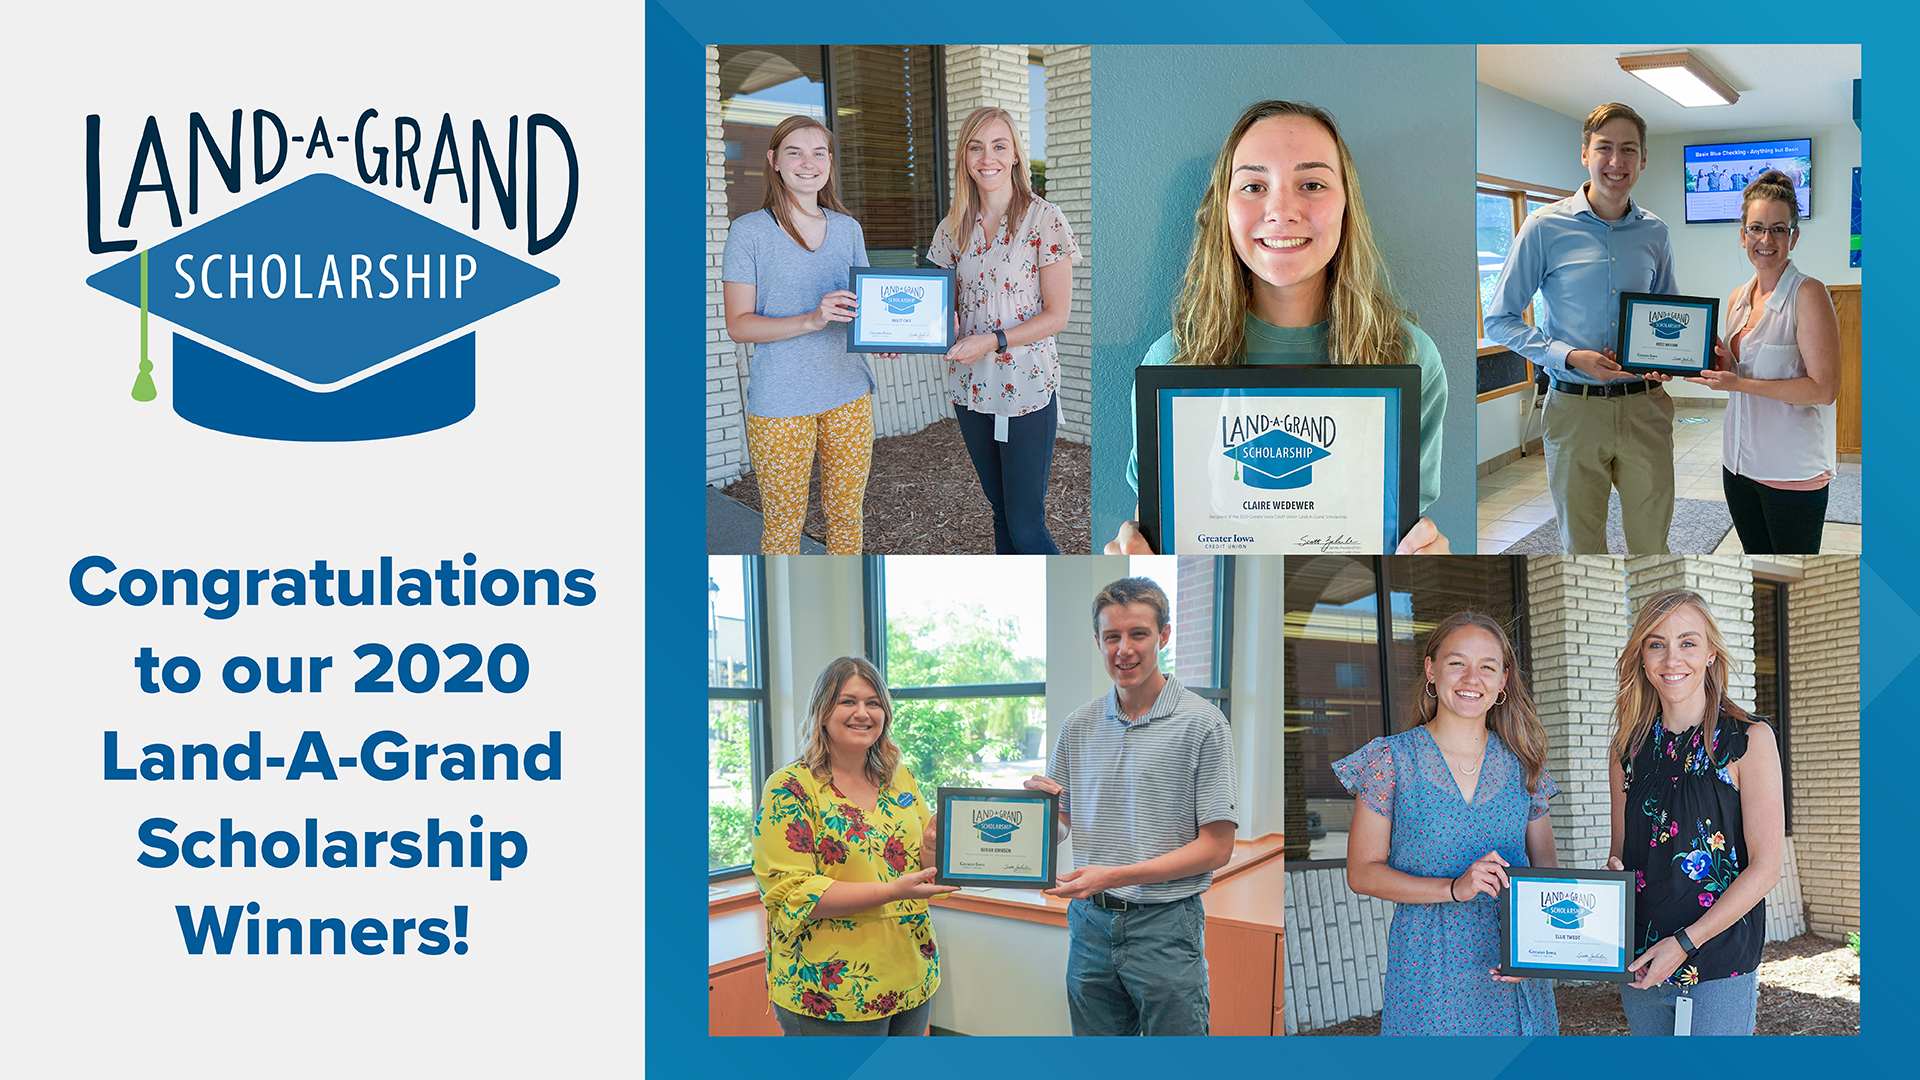 2020 land-a-grand scholarship winners